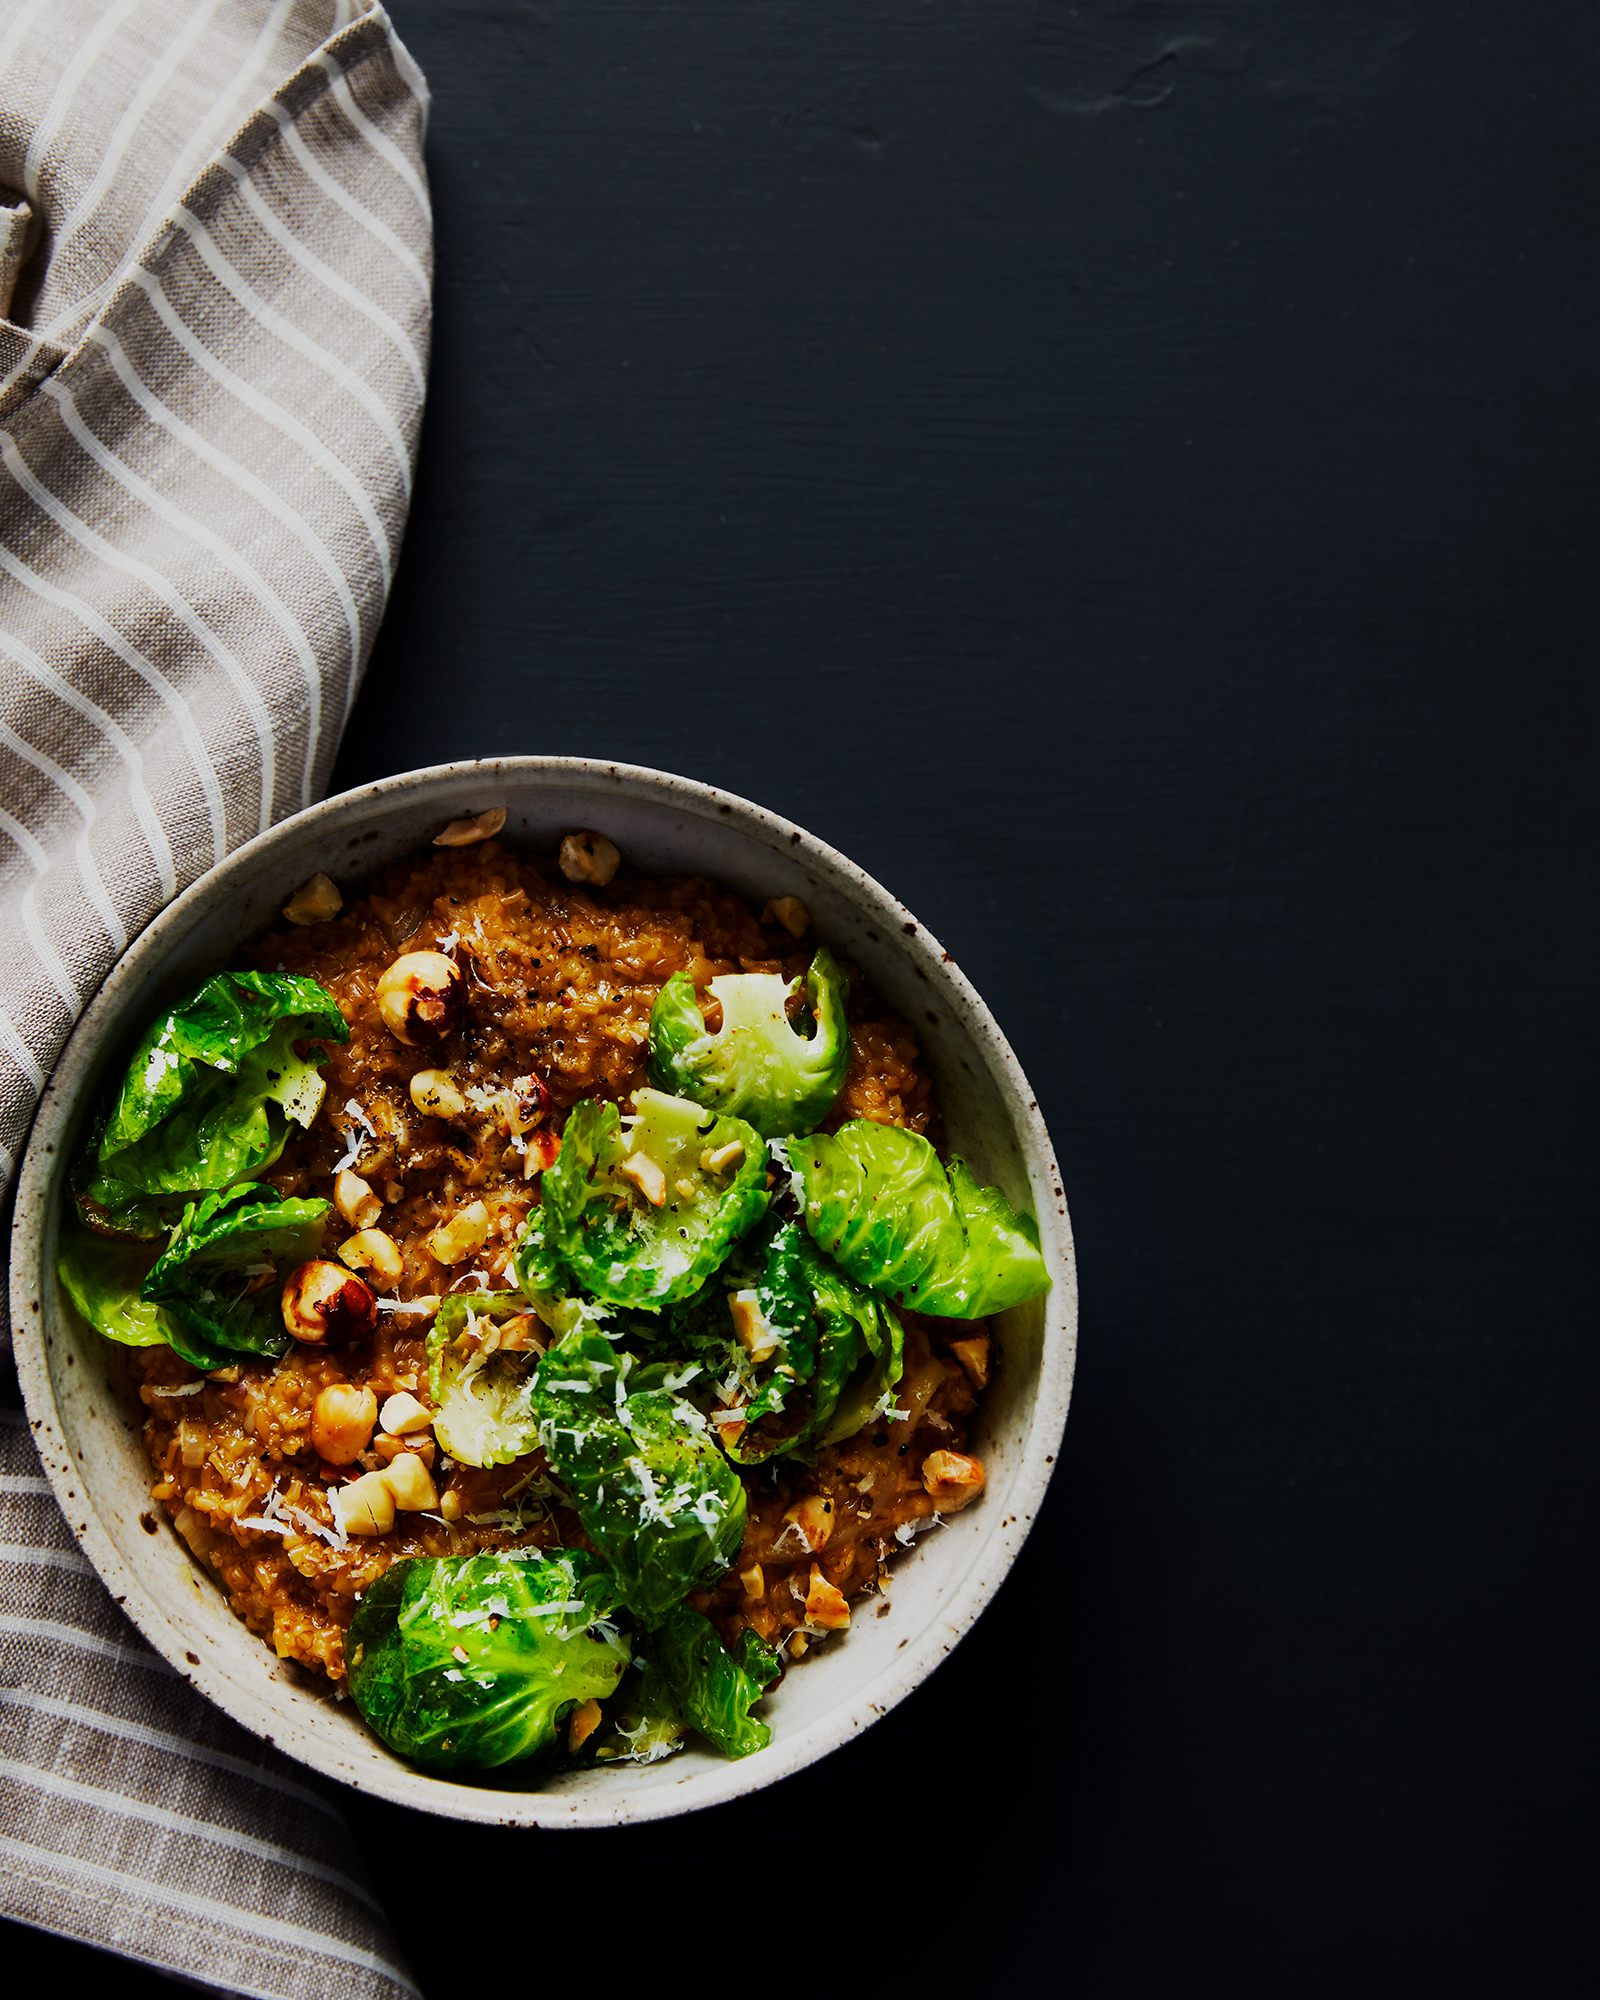 Savory Oatmeal Risotto with Brussels and Toasted Hazelnuts